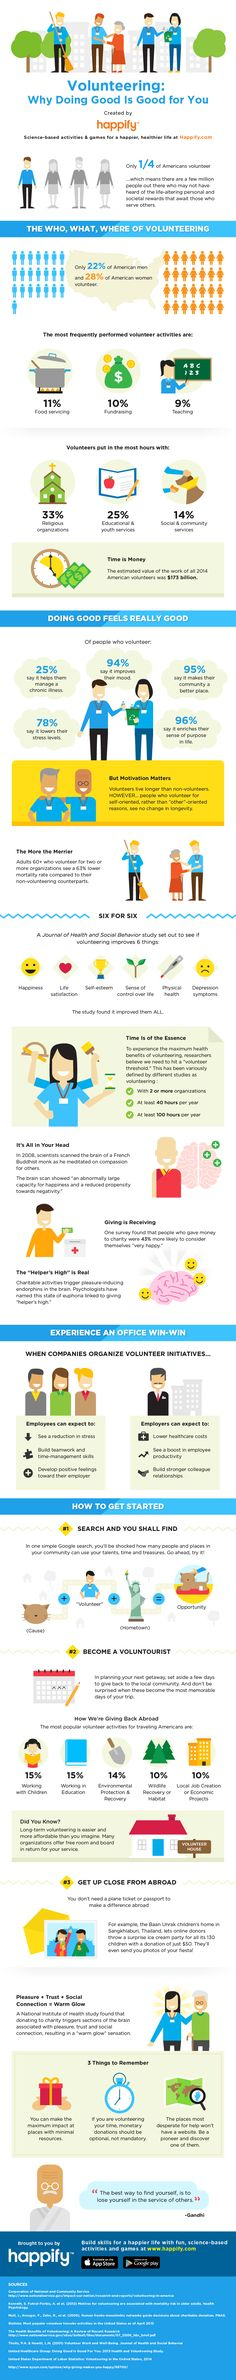 INFOGRAPHIC: Why People Who Volunteer Are Happier and Healthier - Happify Daily